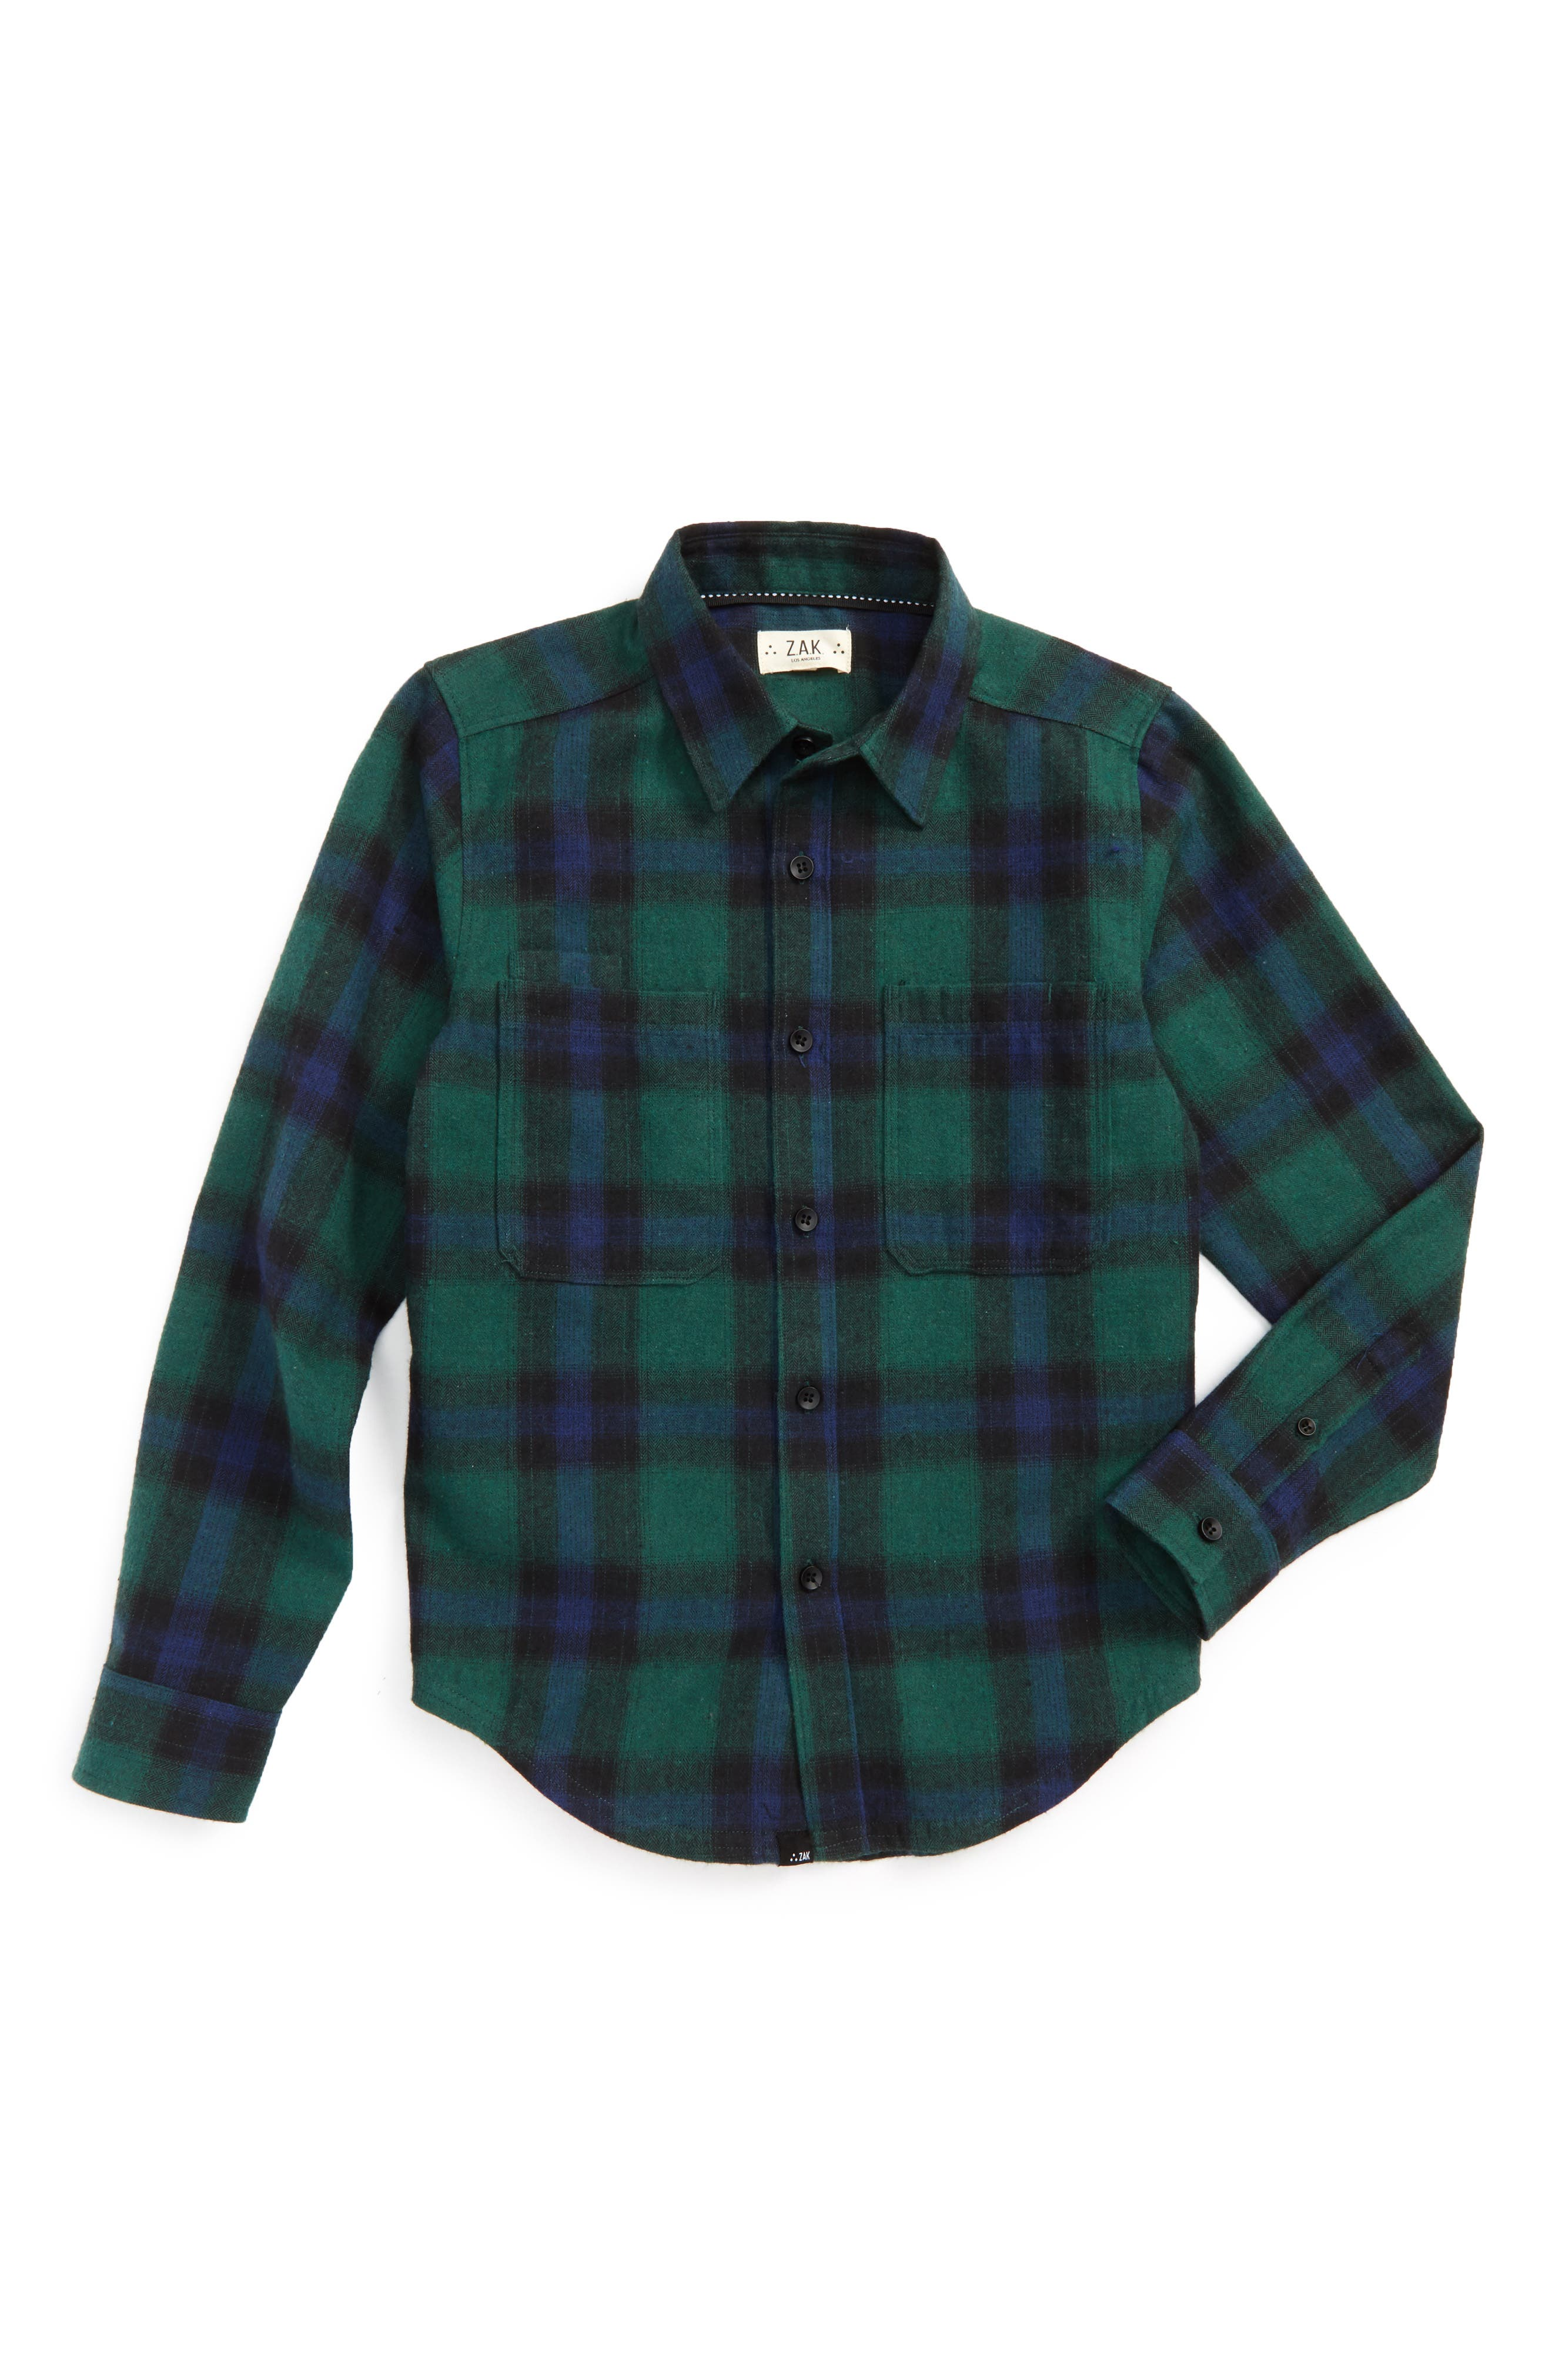 Woven Flannel Shirt,                         Main,                         color, Green/ Navy